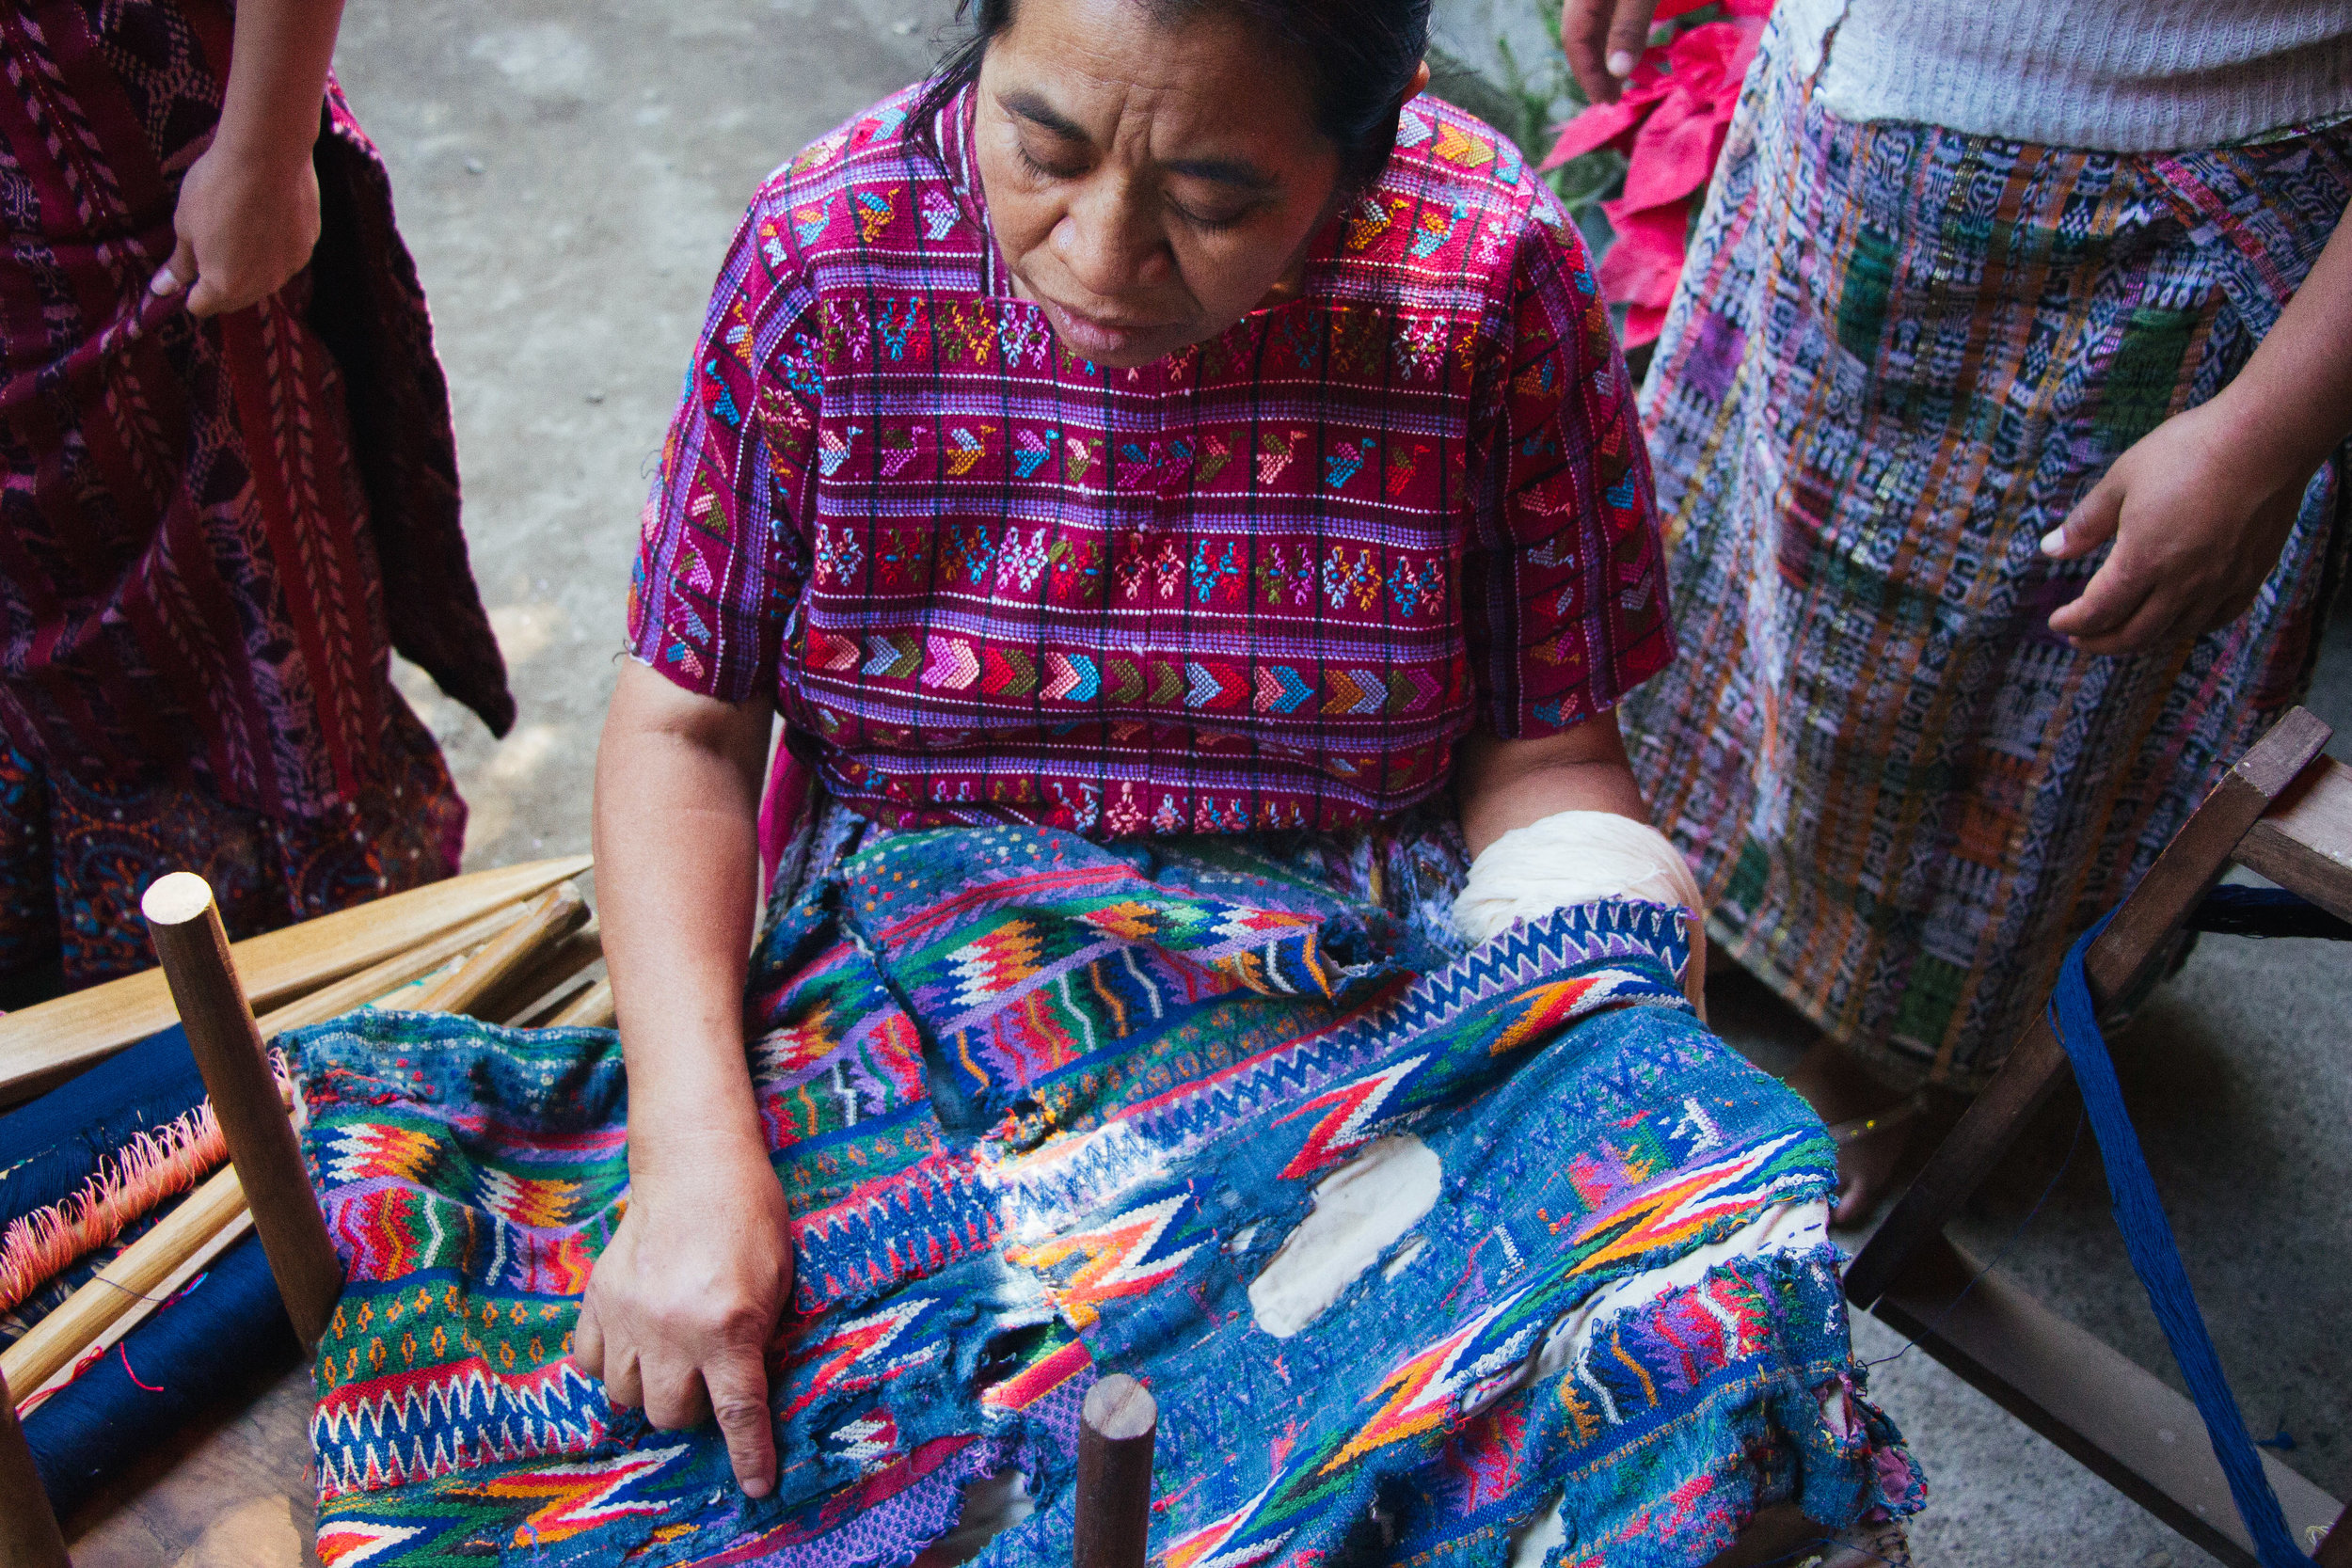 "ELMA LIDIA SOTZ PRESENTS HER GRANDMOTHER'S NEARLY 100 YEAR-OLD HUIPIL IN SAN ANTONIO, GUATEMALA ON JAN. 9. SOTZ TAUGHT HER THREE DAUGHTERS TO WEAVE WHEN THEY WERE CHILDREN.""OUR ANCESTORS TAUGHT US ALL OF THIS,"" SOTZ SAYS"